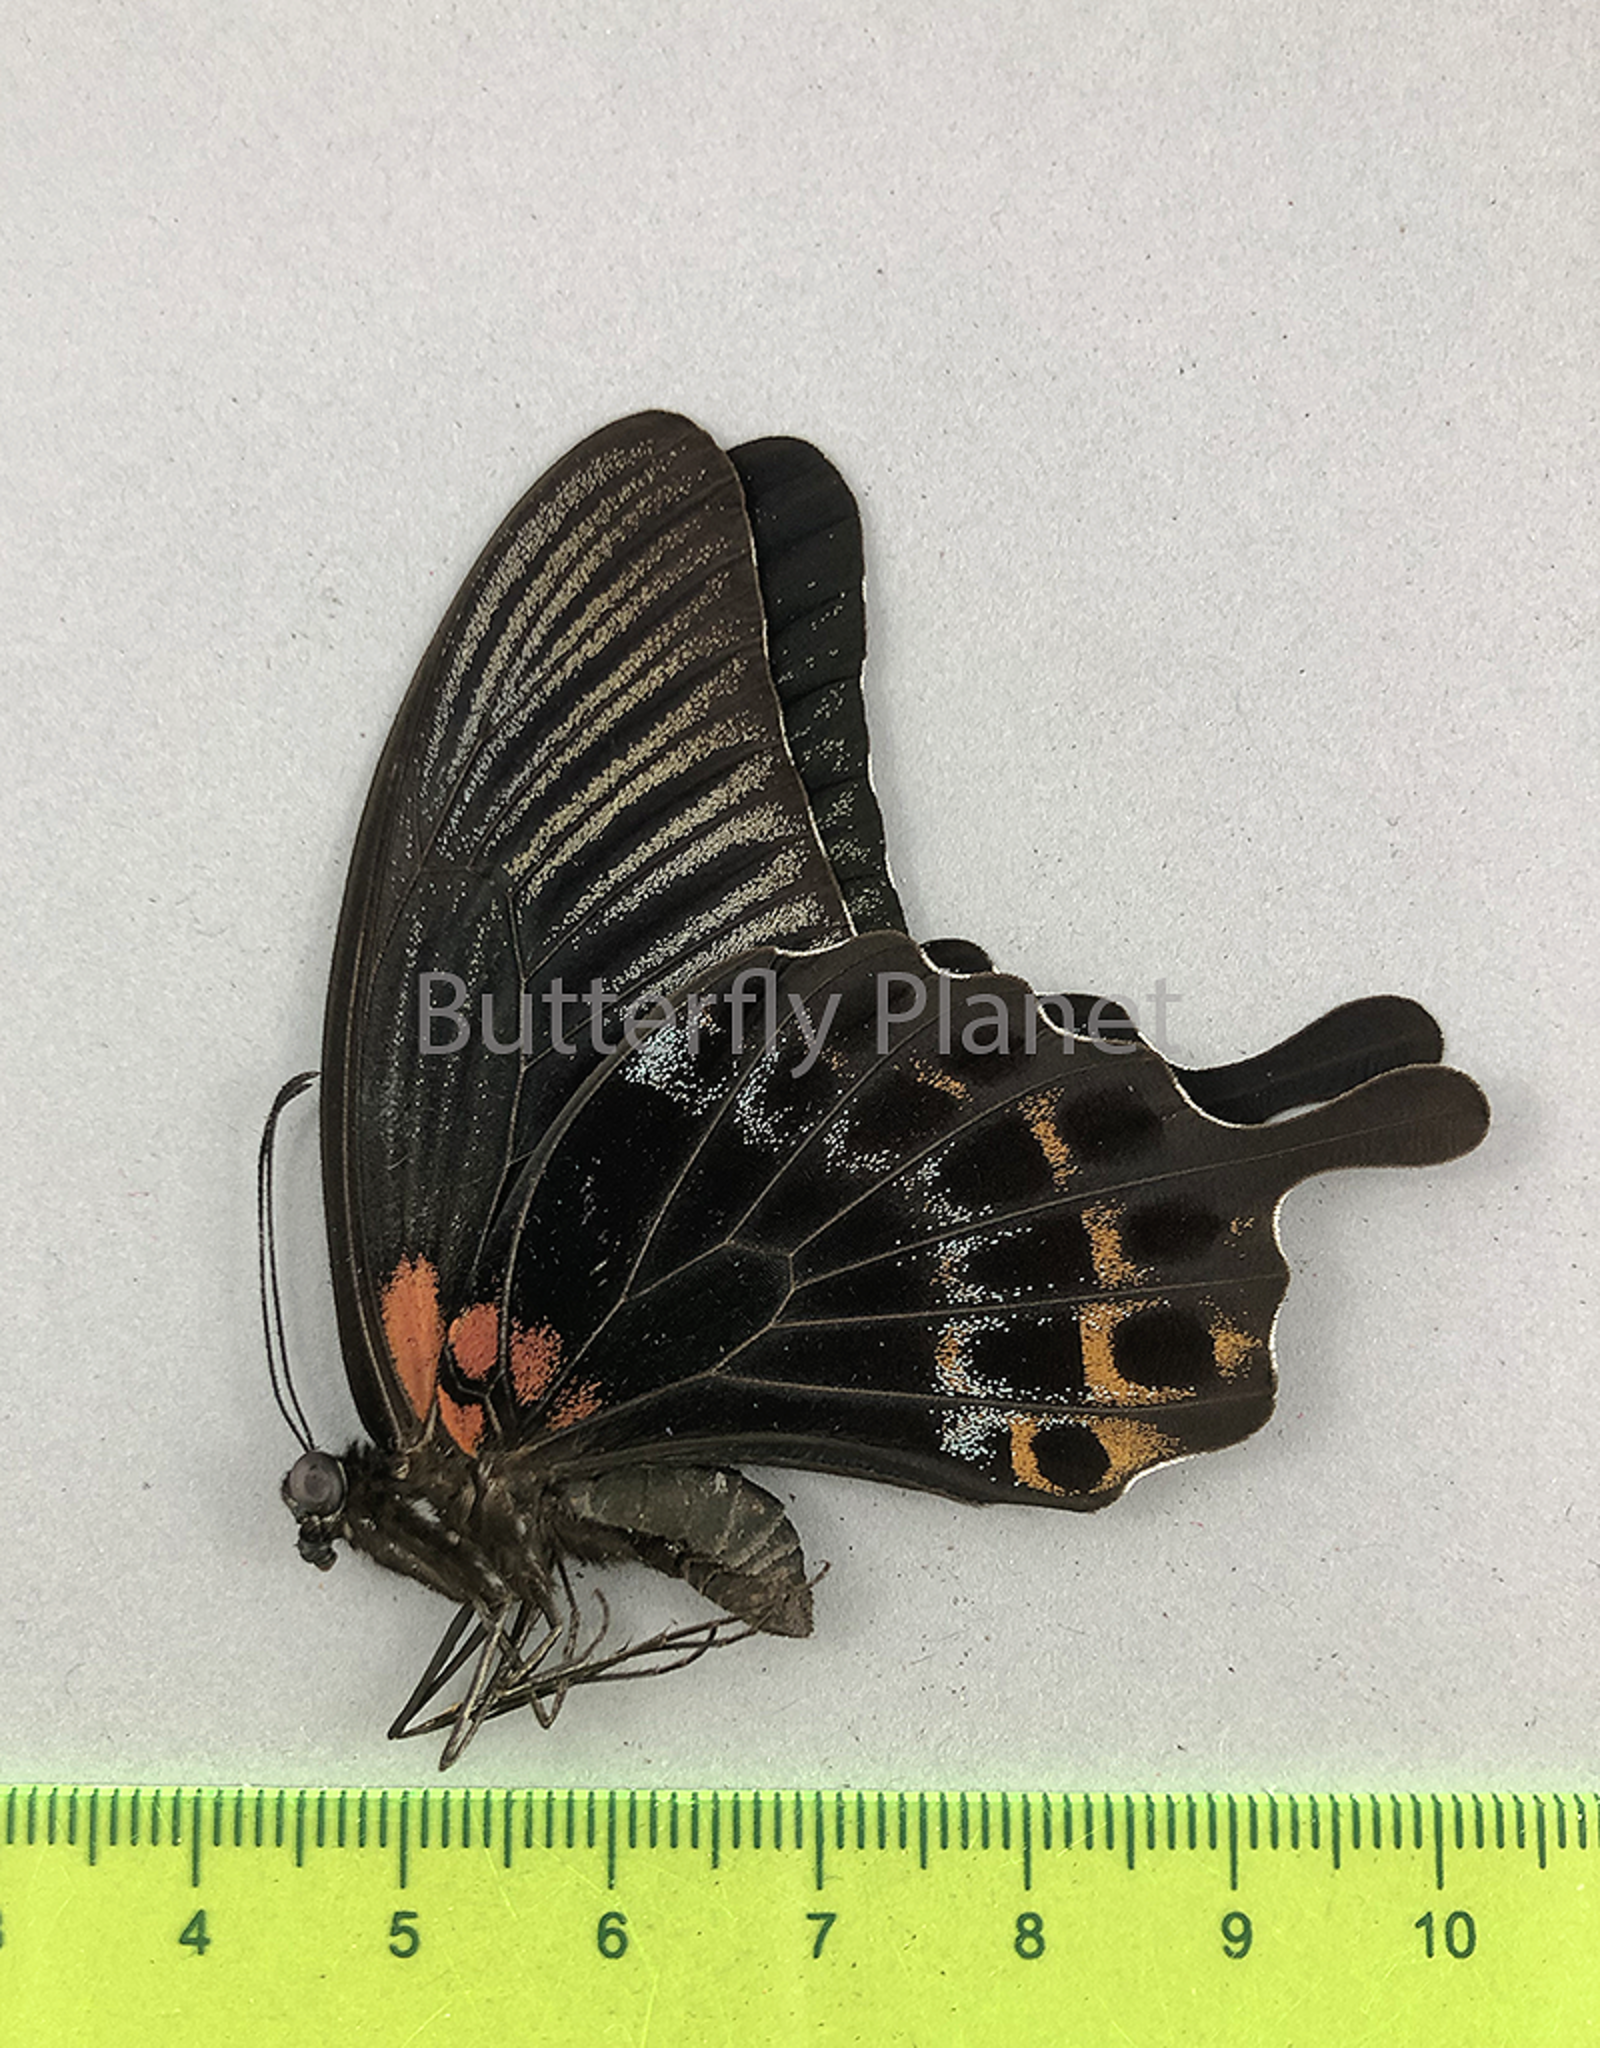 Papilio lowi suffusa M A1/A1- Marinduque, Philippines